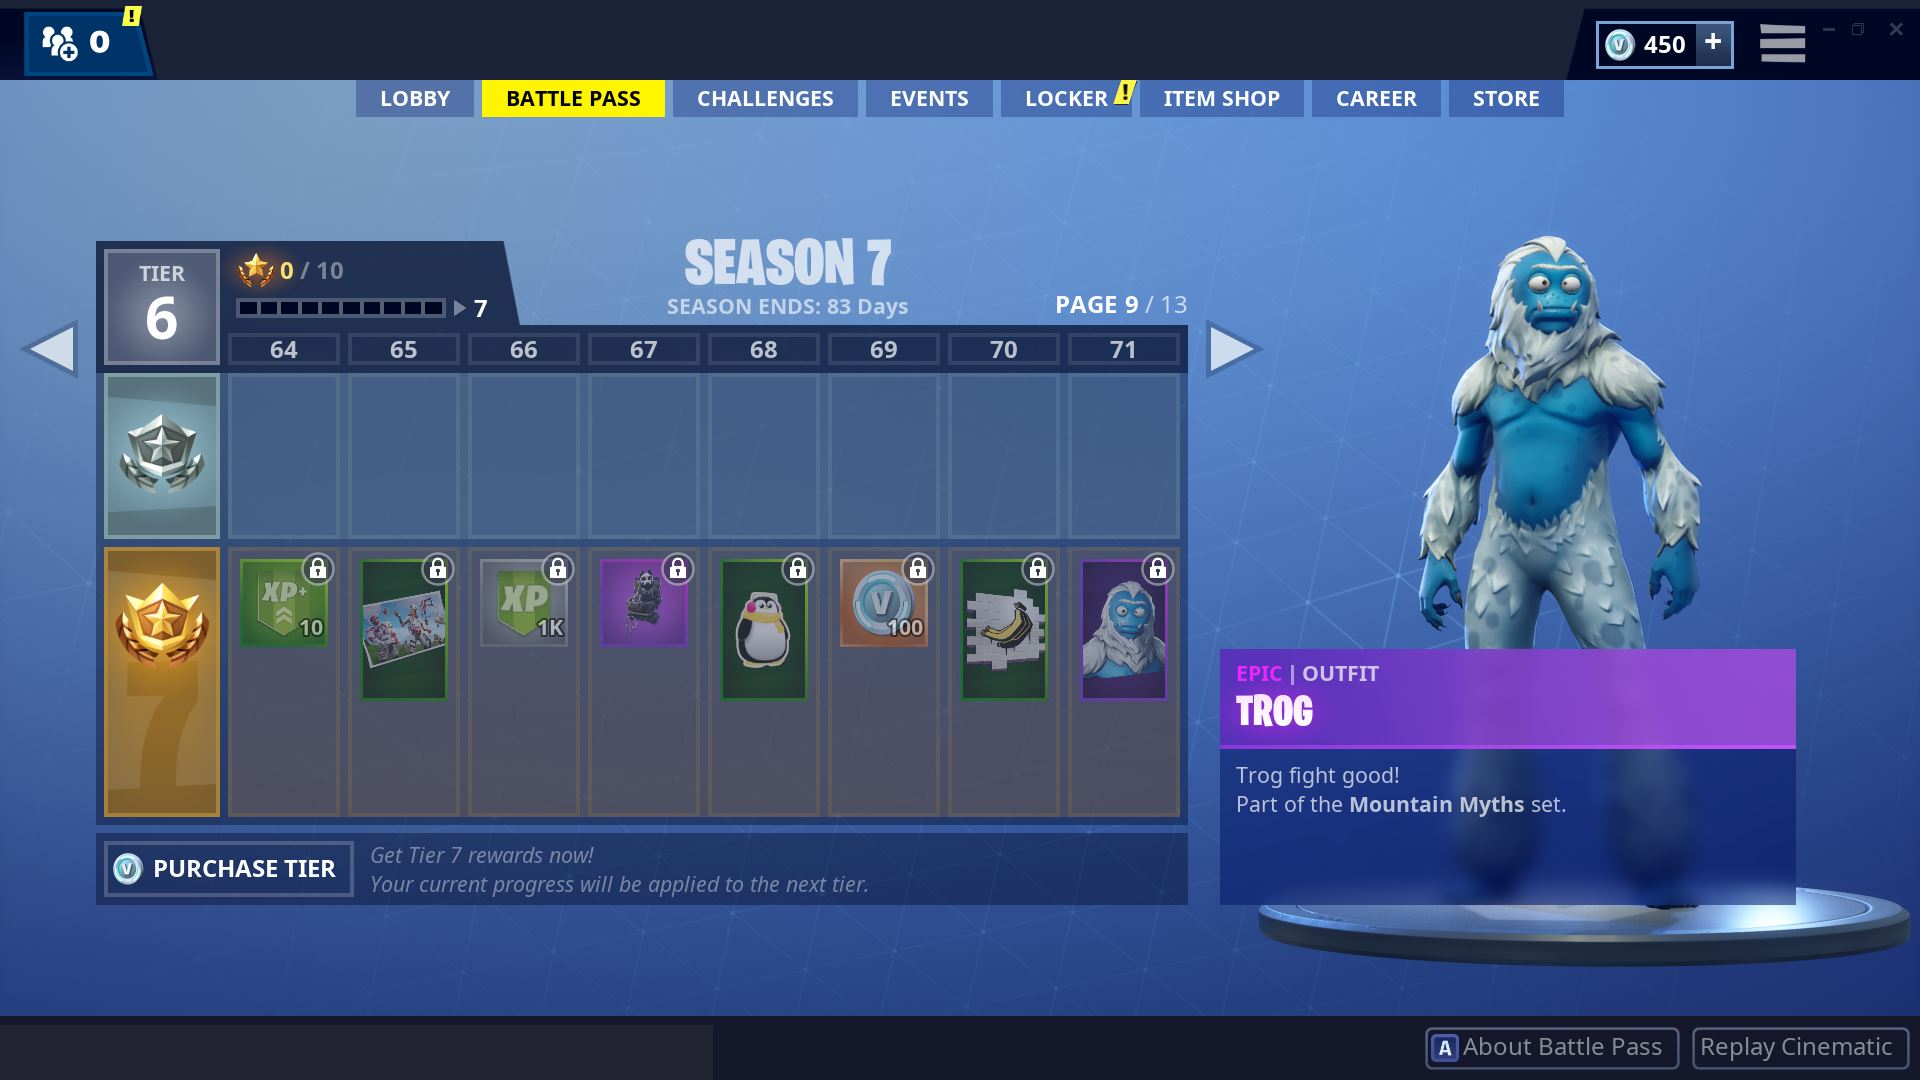 Fortnite Season 7 Battle Pass Page 9